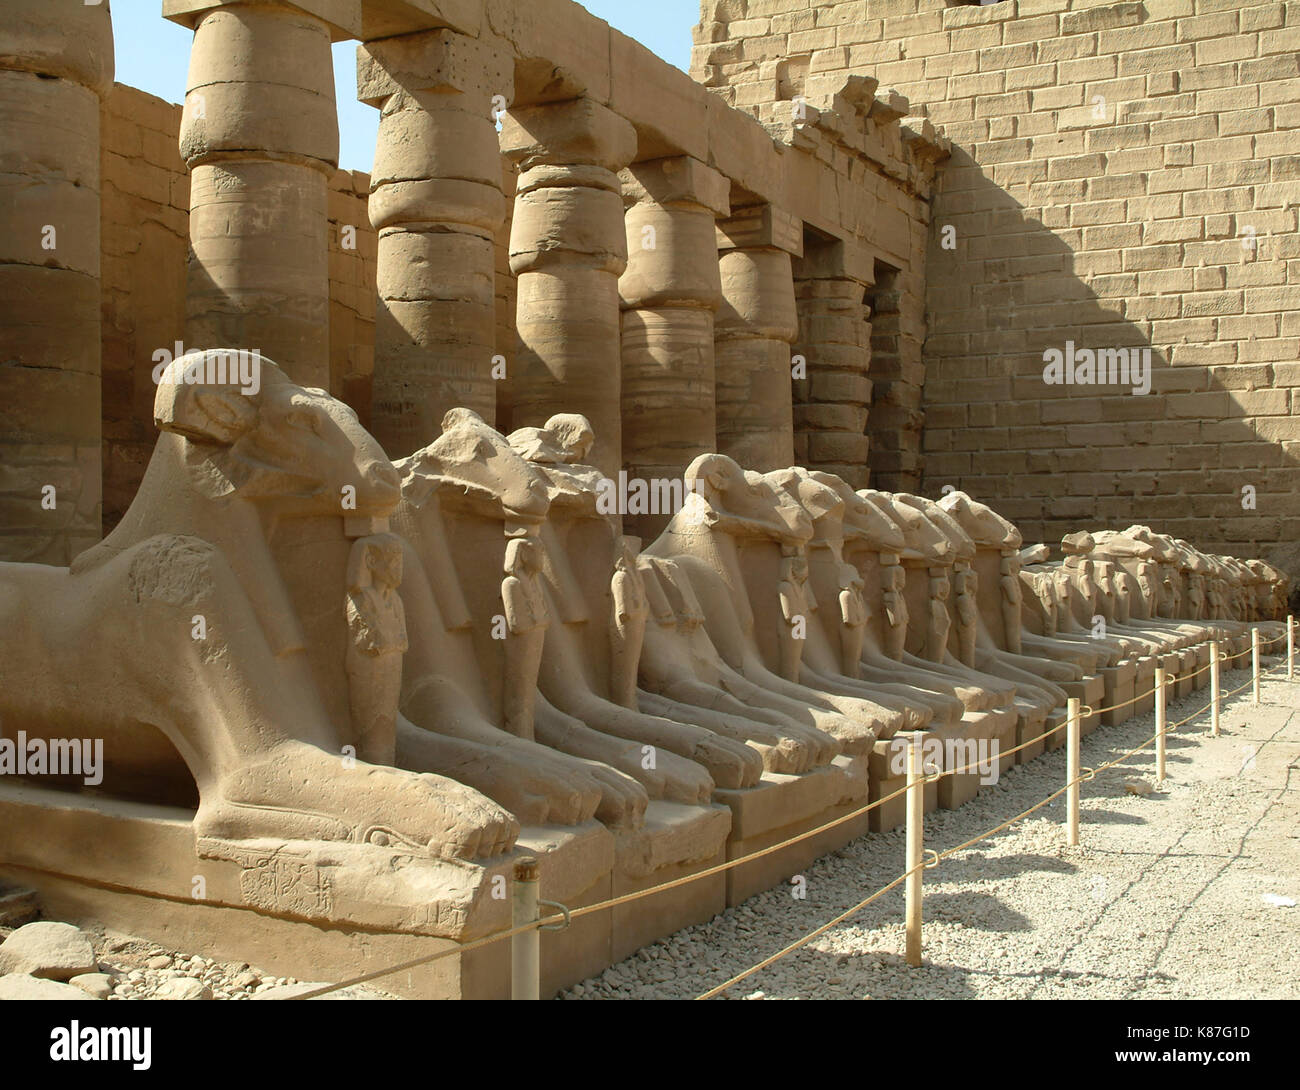 Alley of sphinxes with sheep heads, without people, Thebes, UNESCO World Heritage Site, Egypt, North Africa, Africa - Stock Image